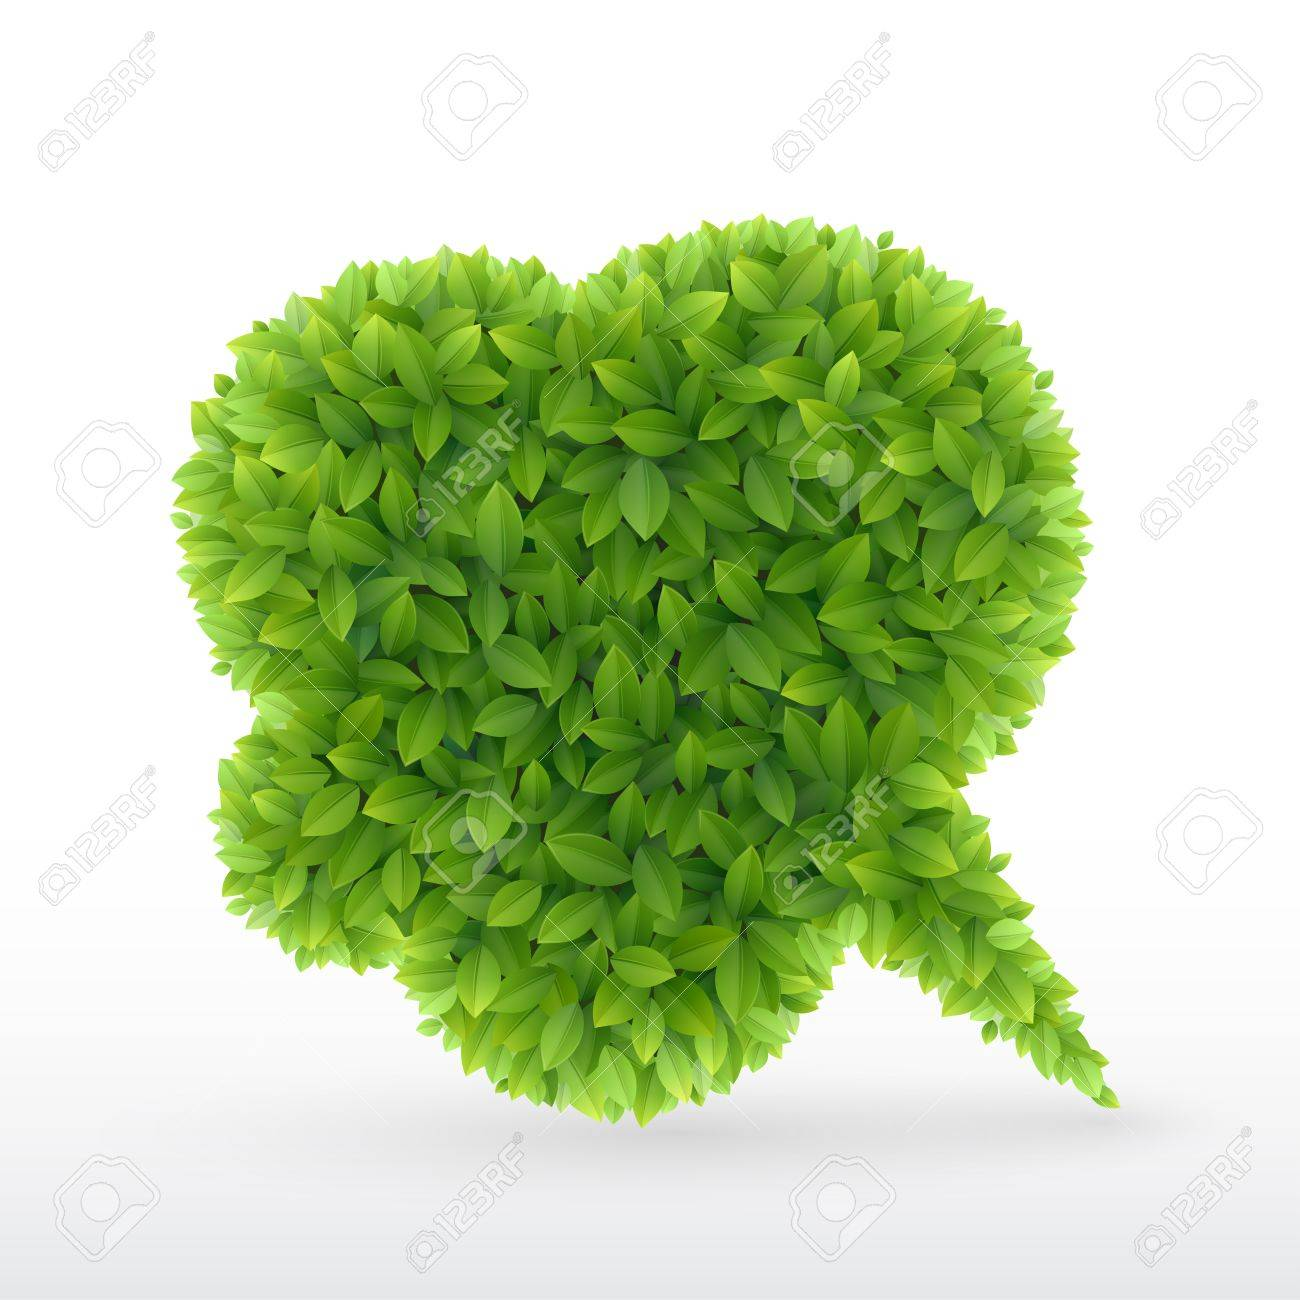 Eco Friendly Bubble for speech, Green leaves   illustration Stock Vector - 14677970